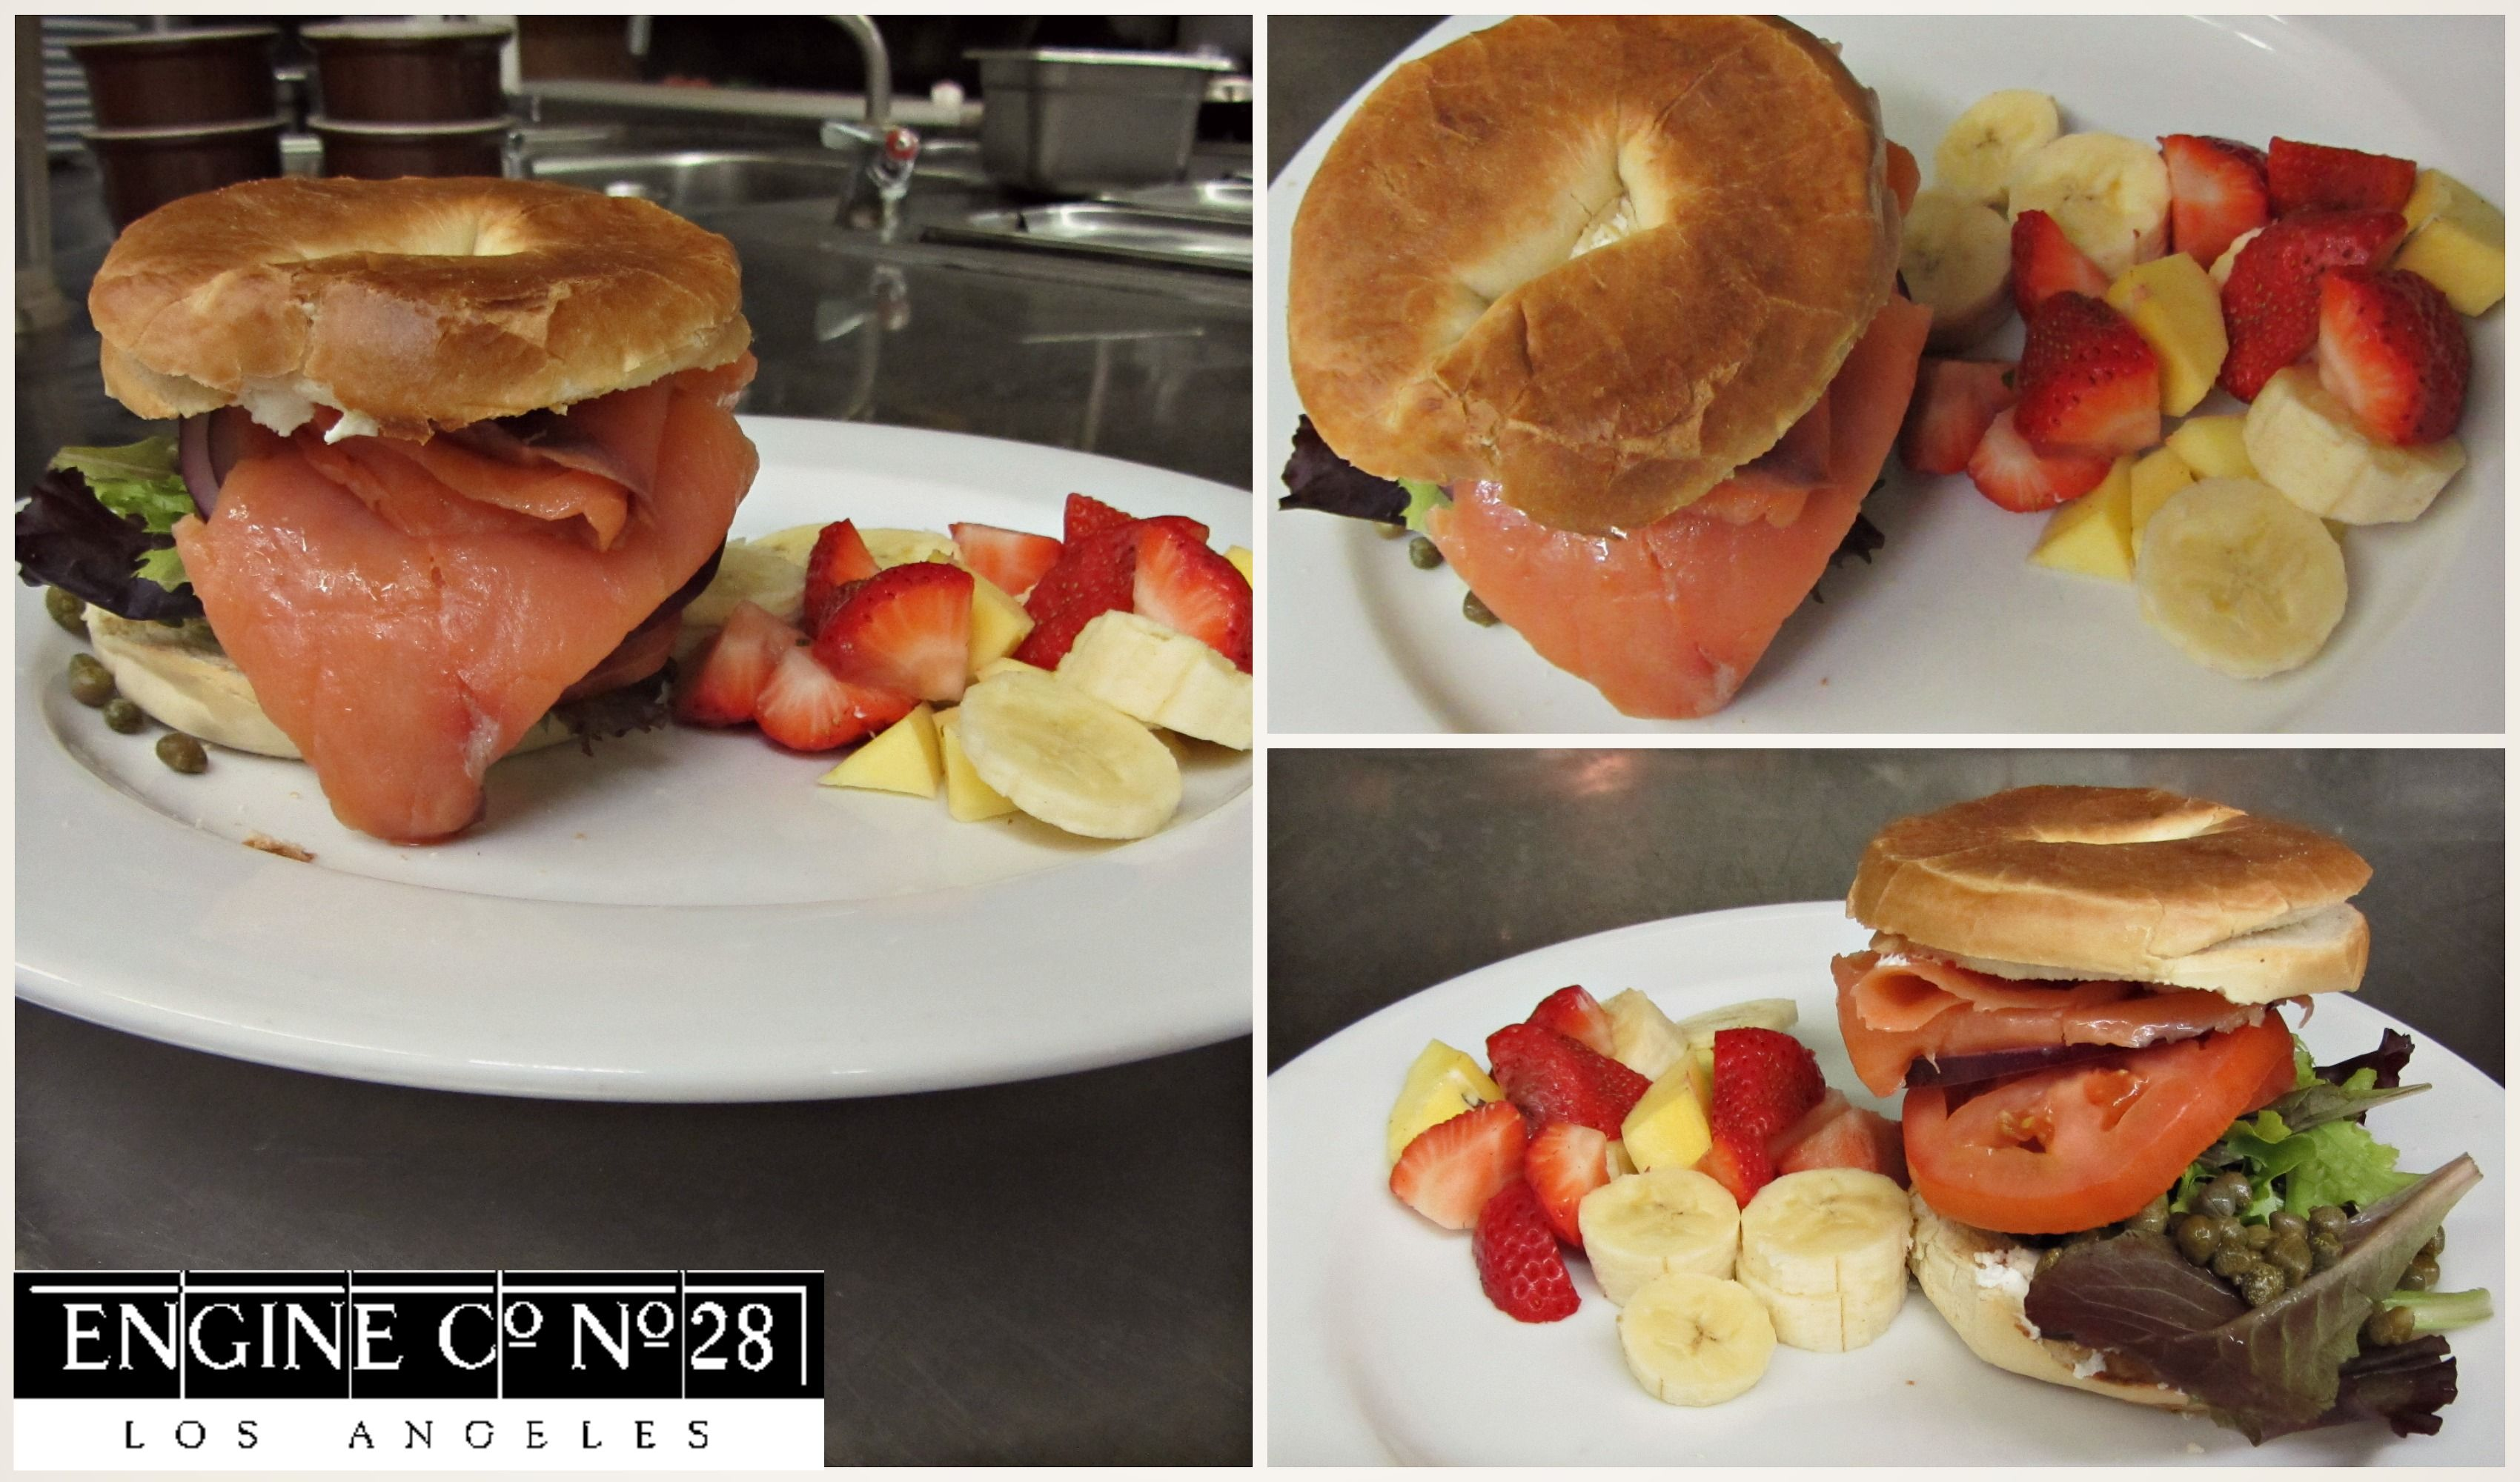 Delicious lox and bagel on our brunch menu Engine Co. No